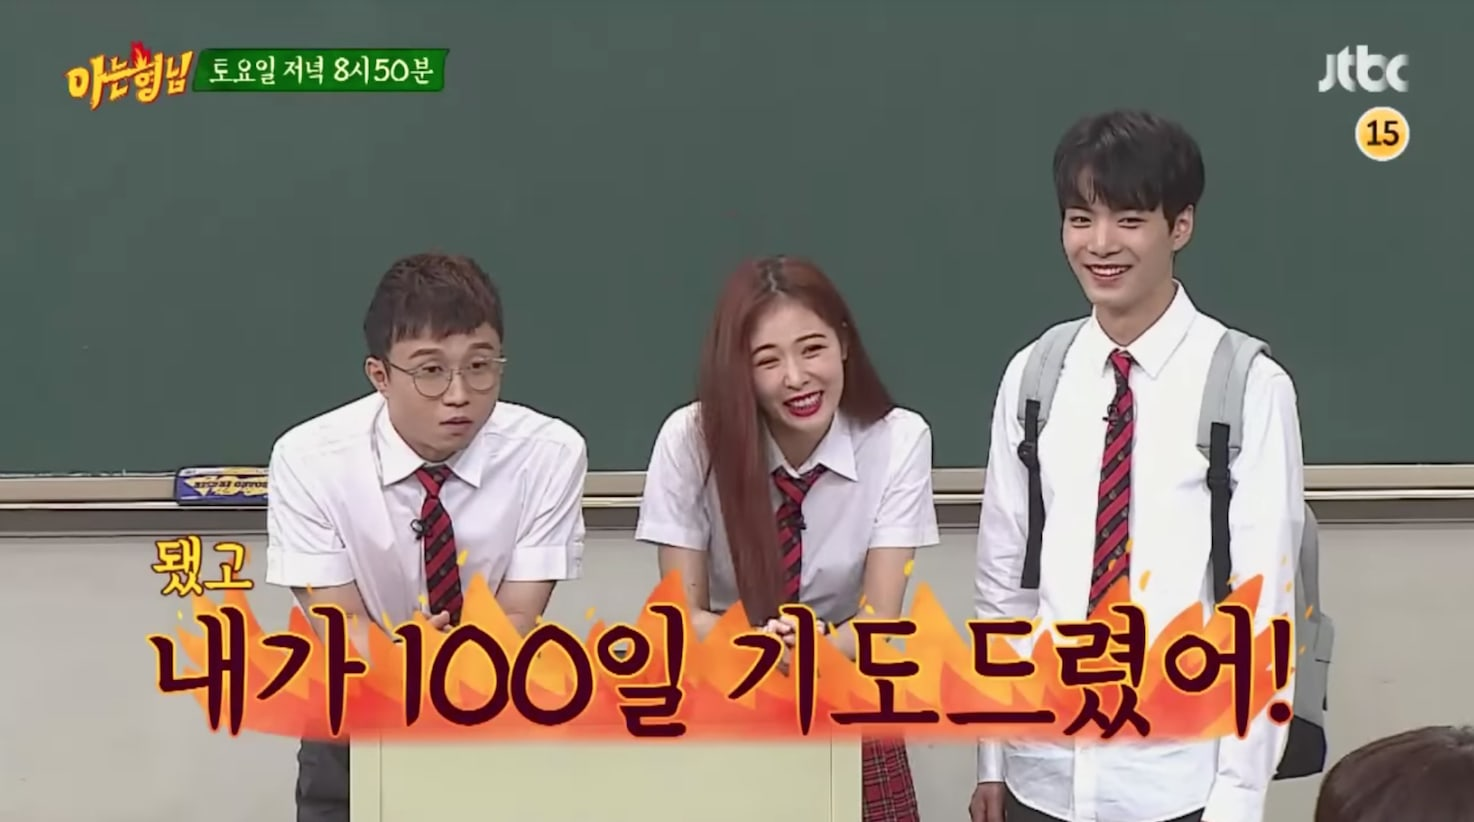 """Watch: NU'EST's JR And HyunA Bring Laughs In Preview For """"Ask Us Anything"""""""